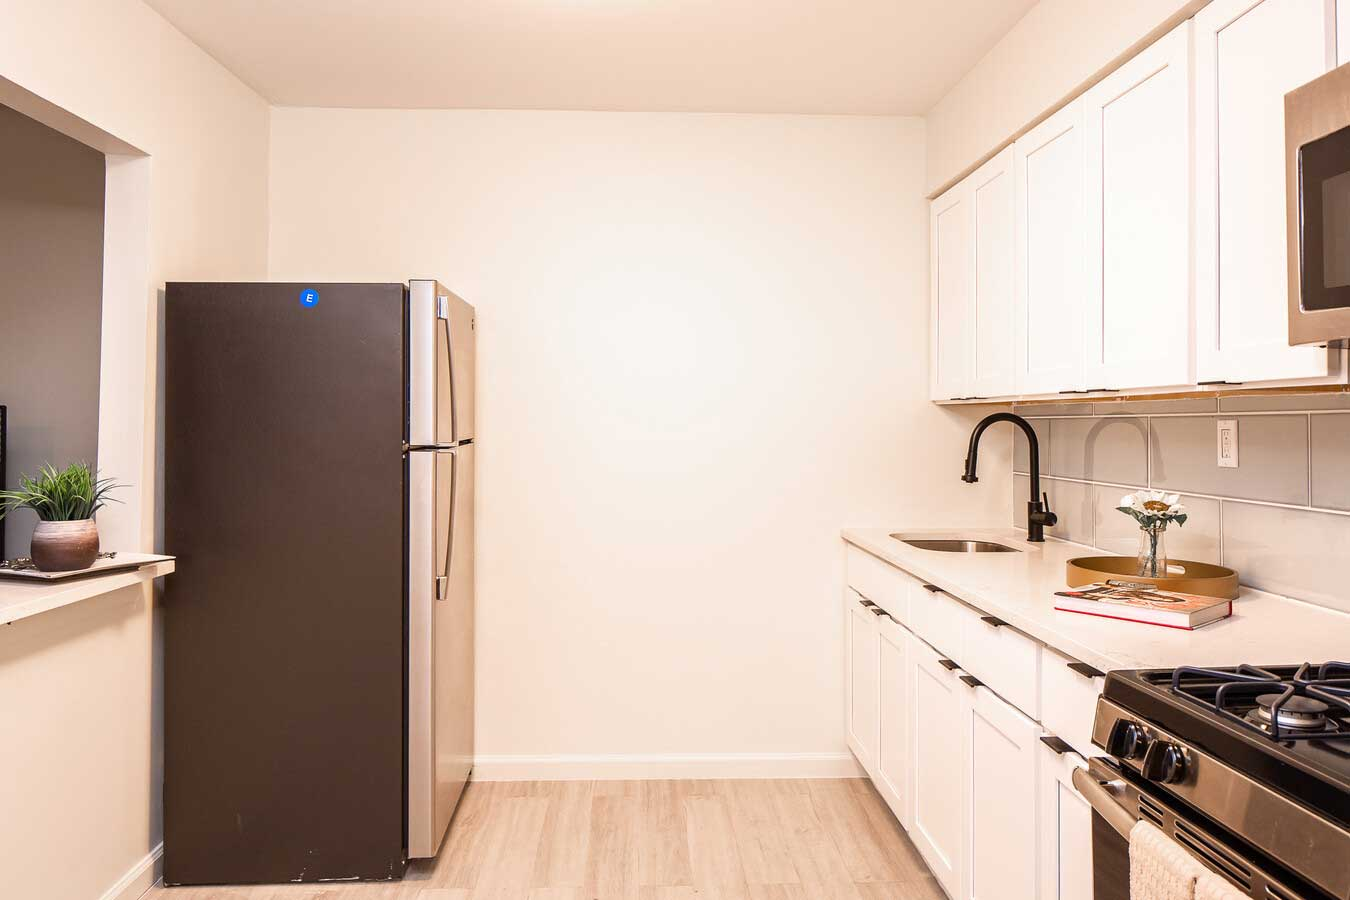 Kitchen at Hampton Gardens Apartments in Middlesex, New Jersey